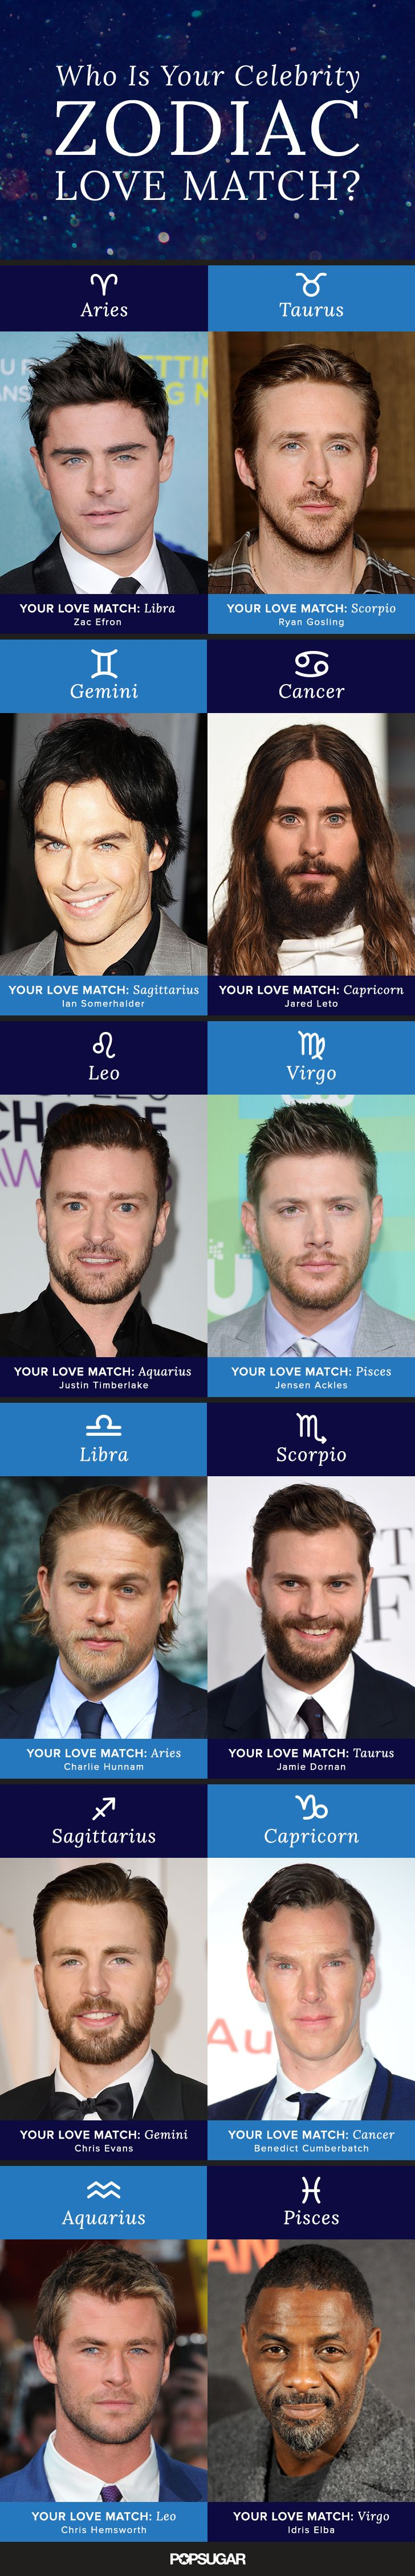 What is your celebrity look-alike? - Quiz - Quotev